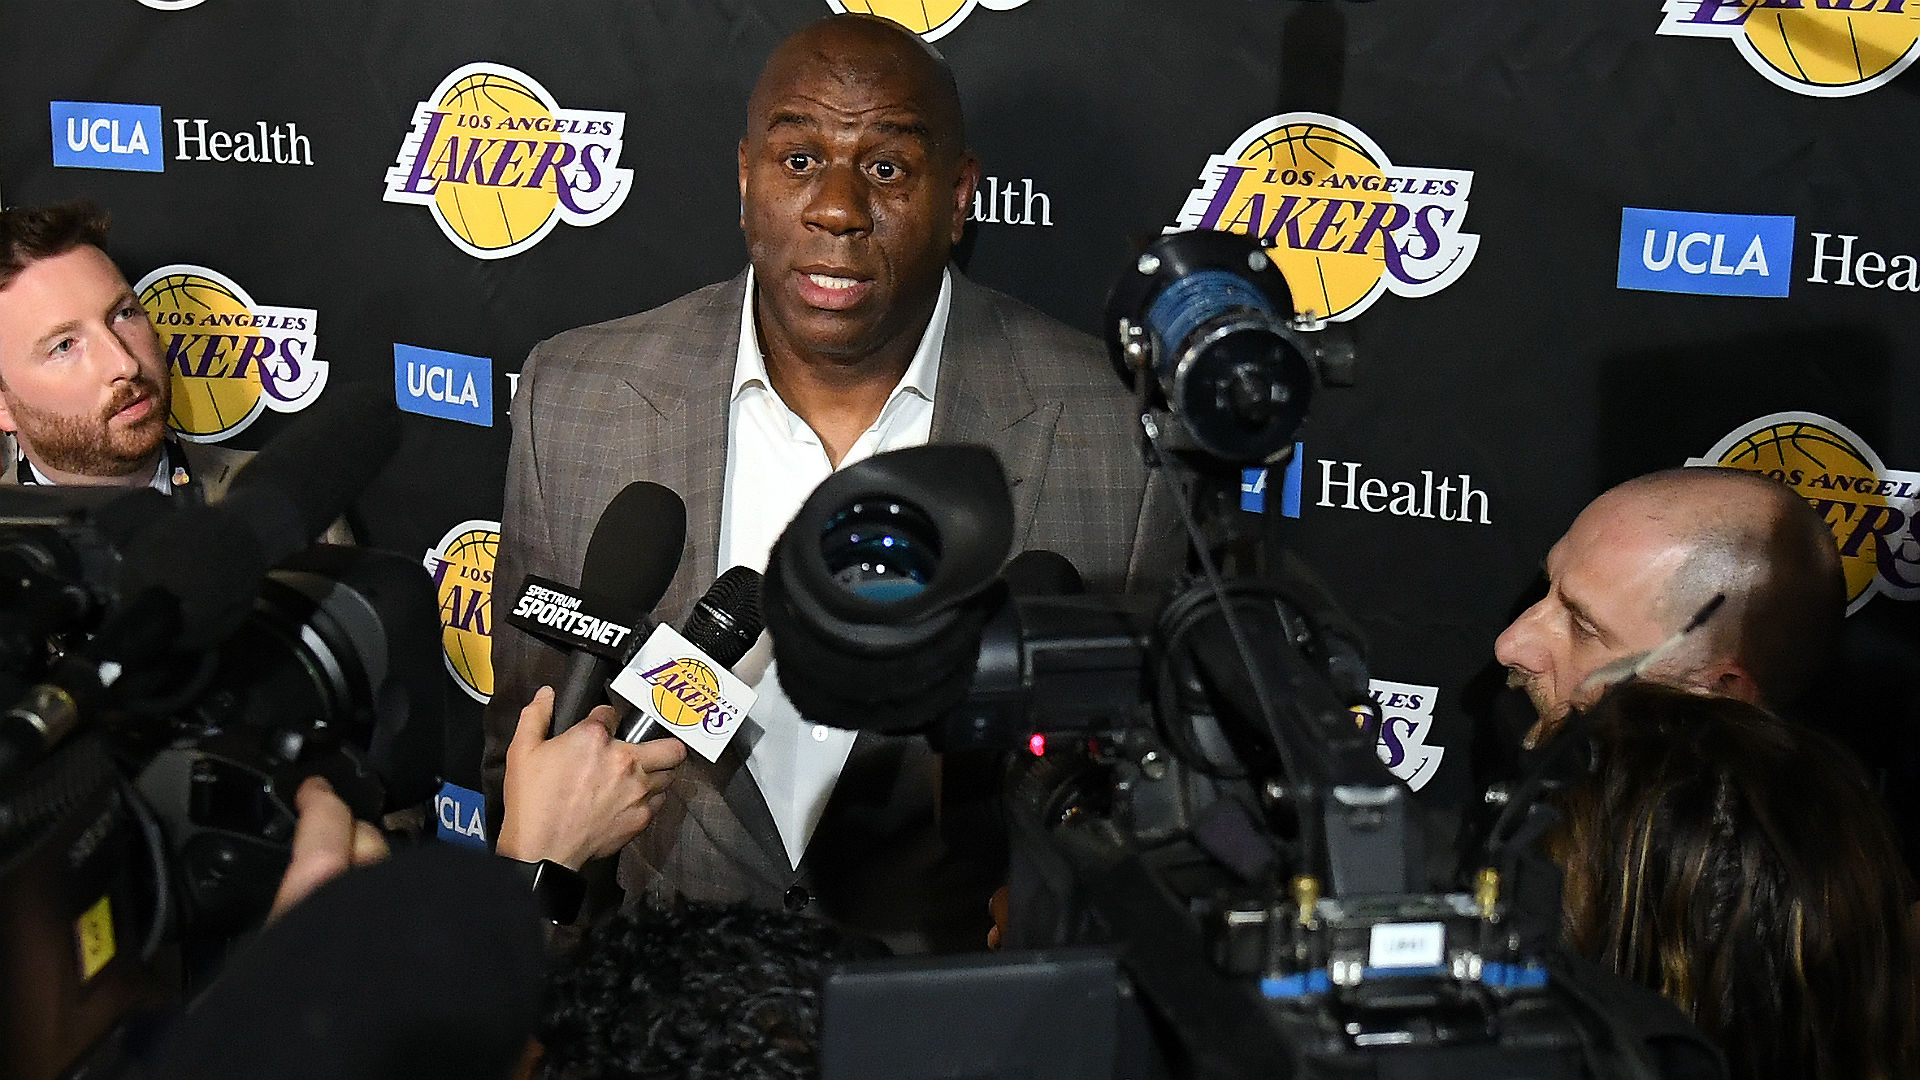 Magic Johnson points finger at Pelinka after Lakers power struggle